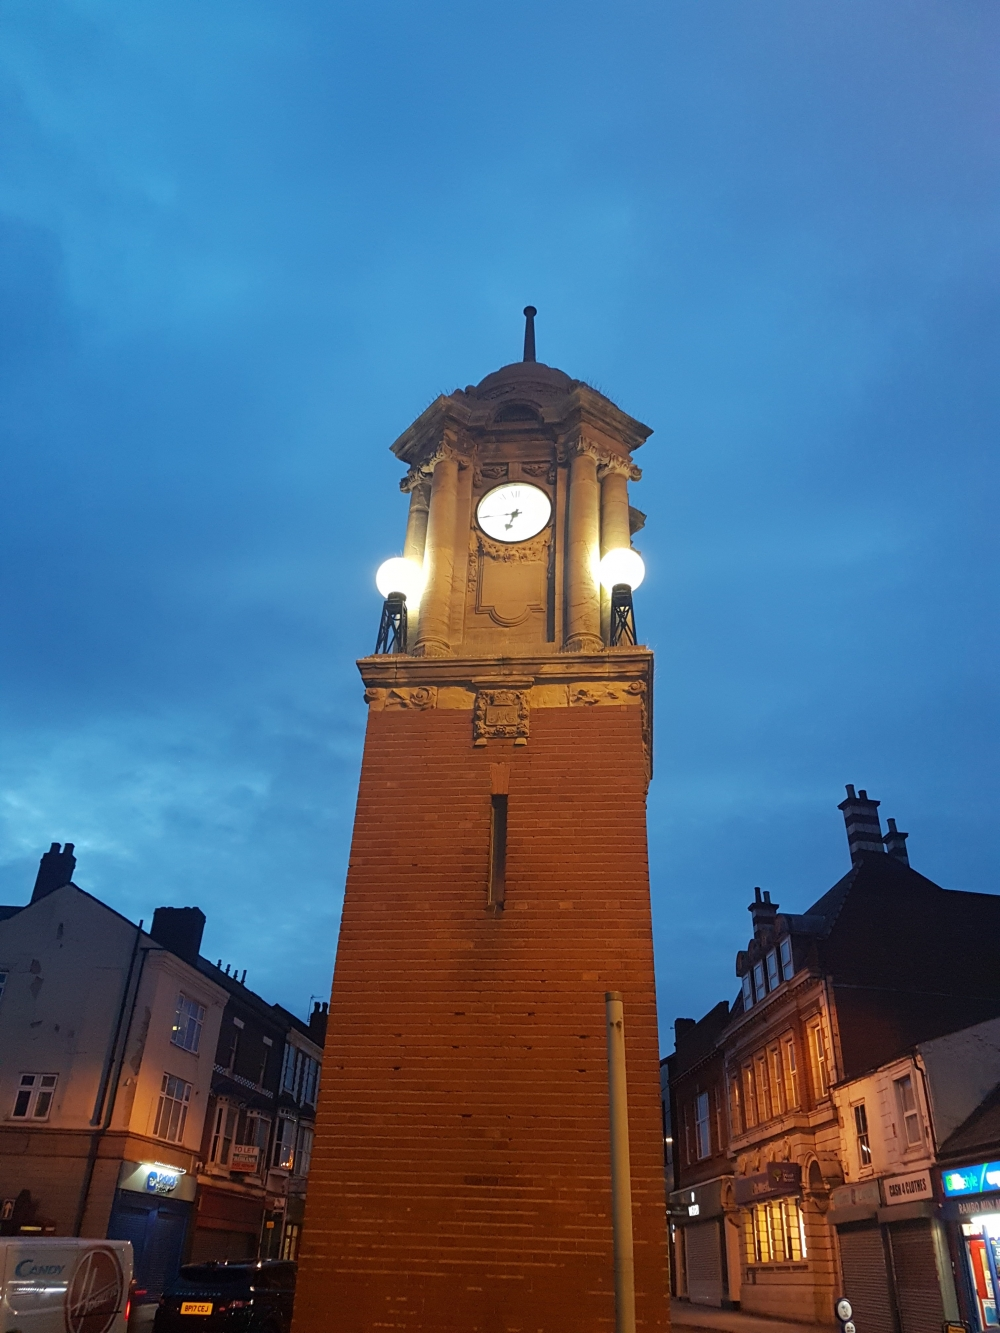 A £5,000 make-over to Wednesbury's historic clock tower is now complete.